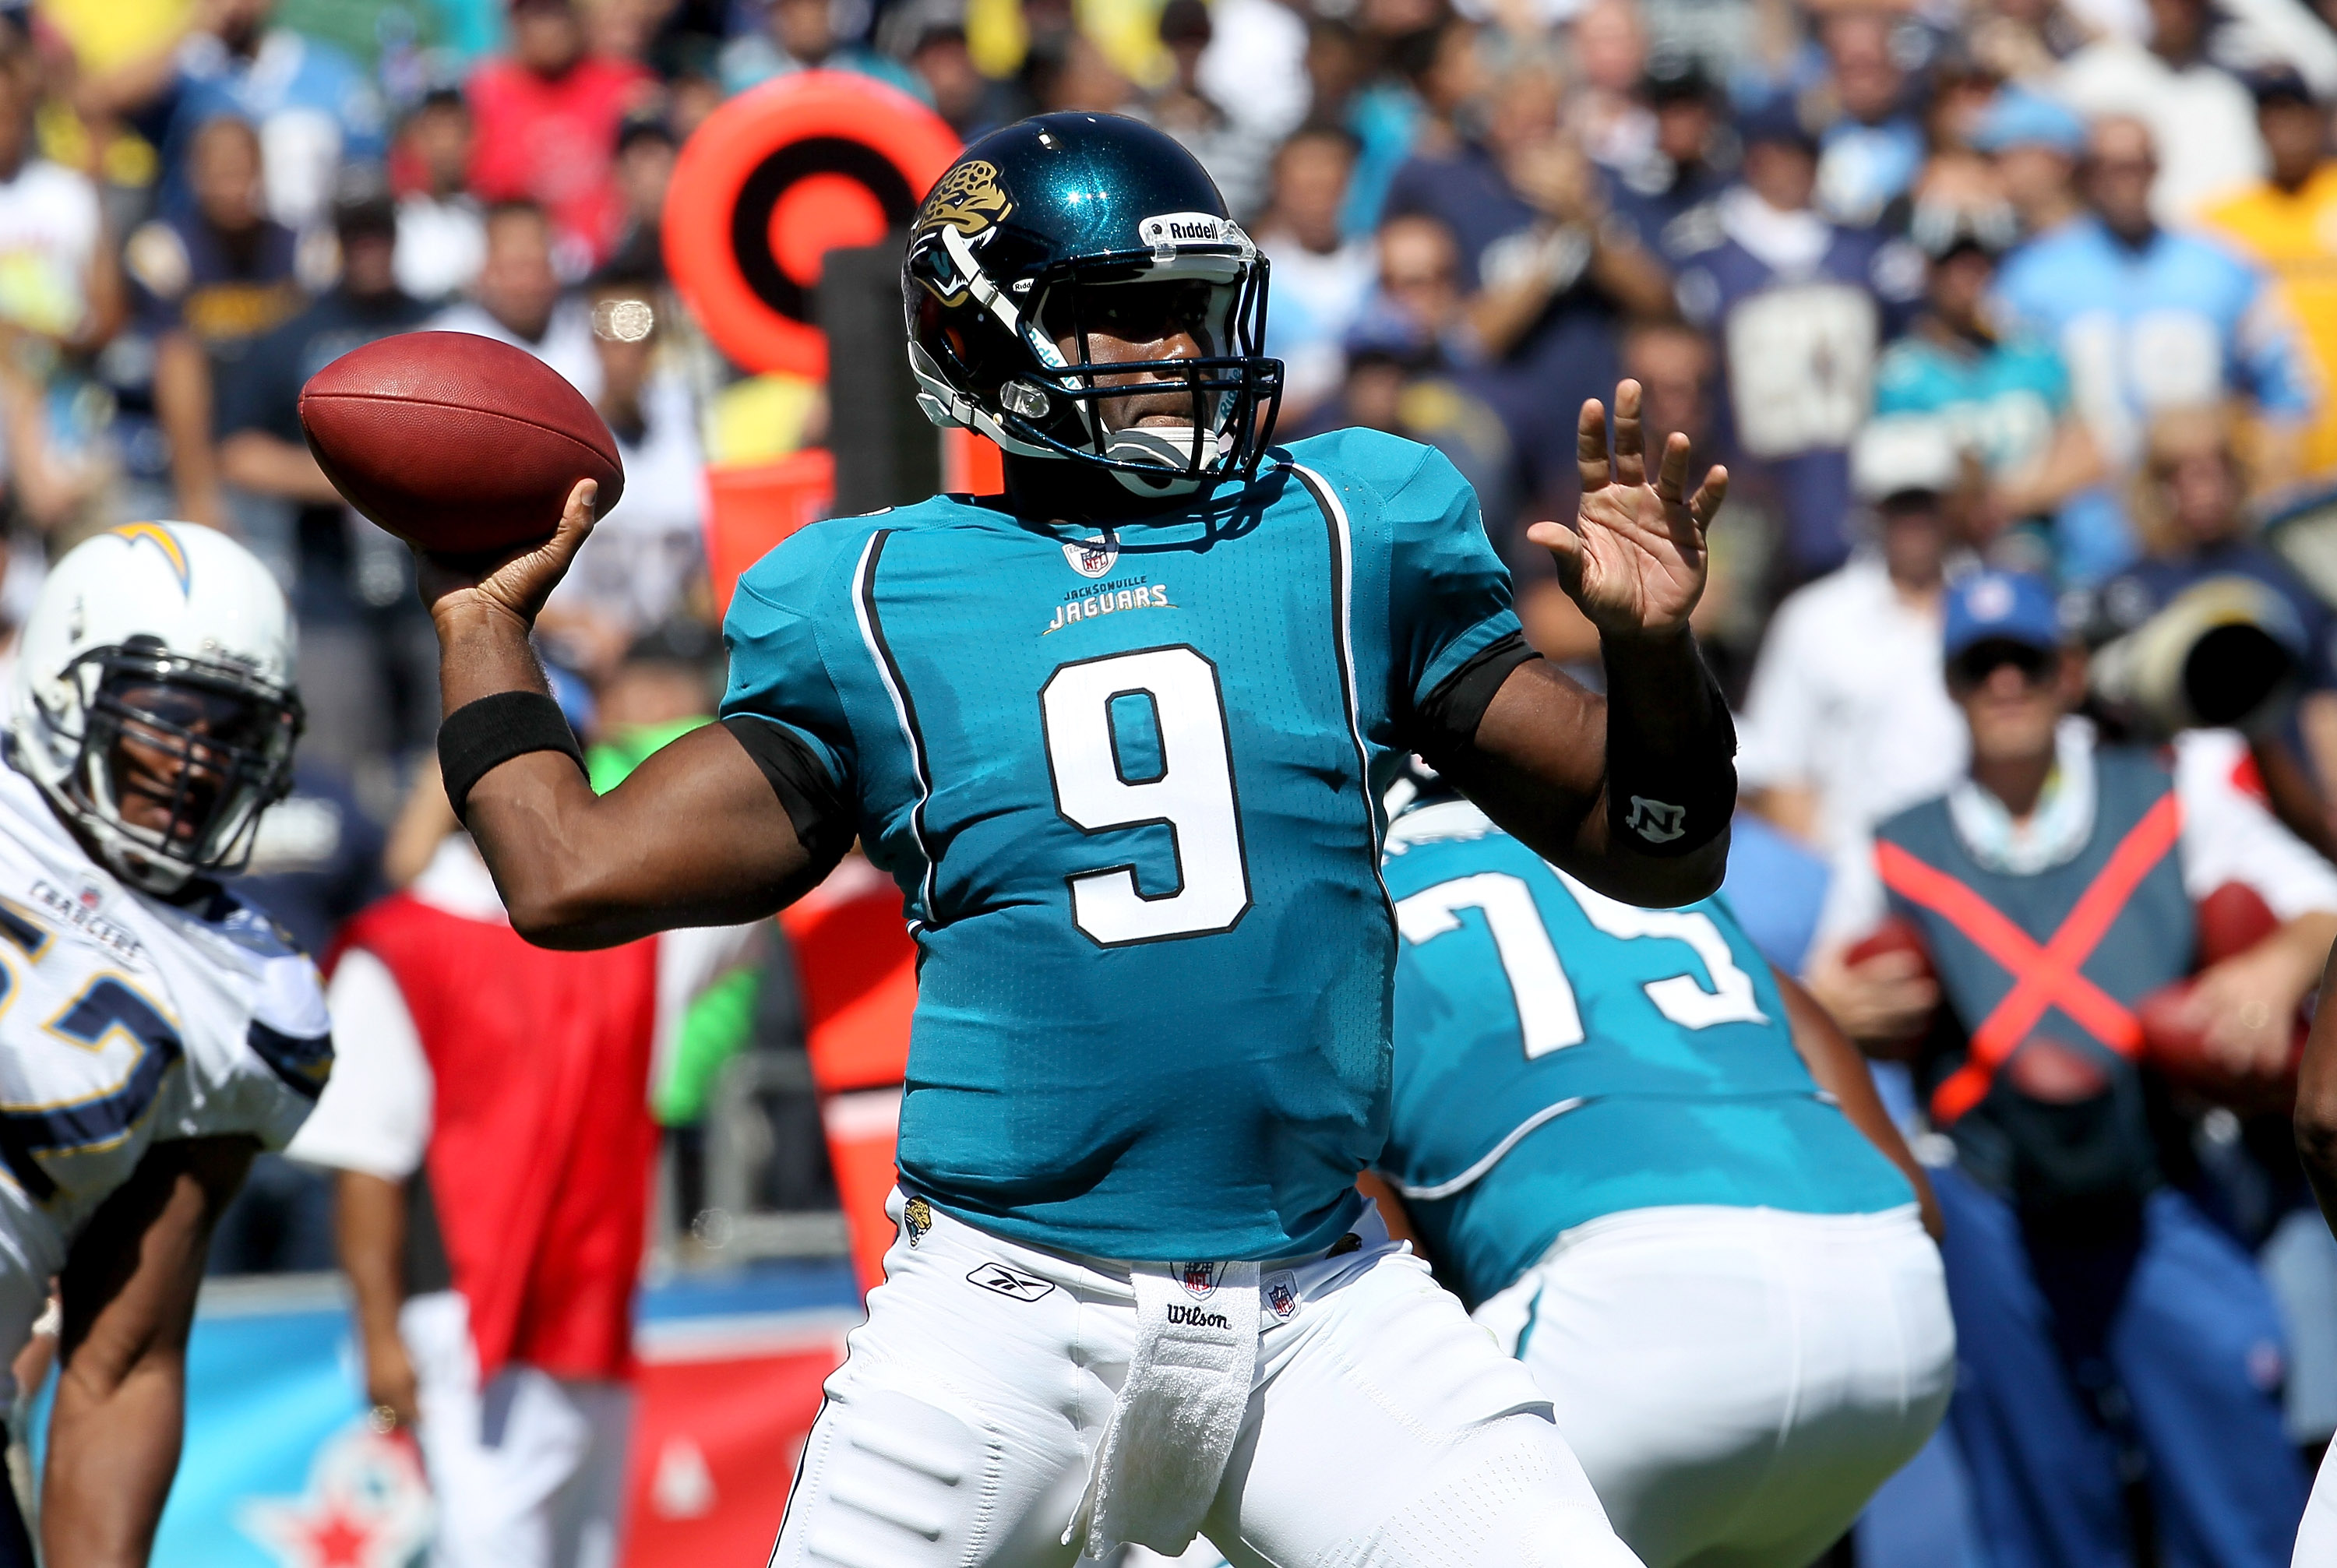 SAN DIEGO - SEPTEMBER 19: Qjuarterback David Garrard #9 of the Jacksonville Jaguars throws a pass against the San Diego Chargers at Qualcomm Stadium on September 19, 2010 in San Diego, California. (Photo by Stephen Dunn/Getty Images)